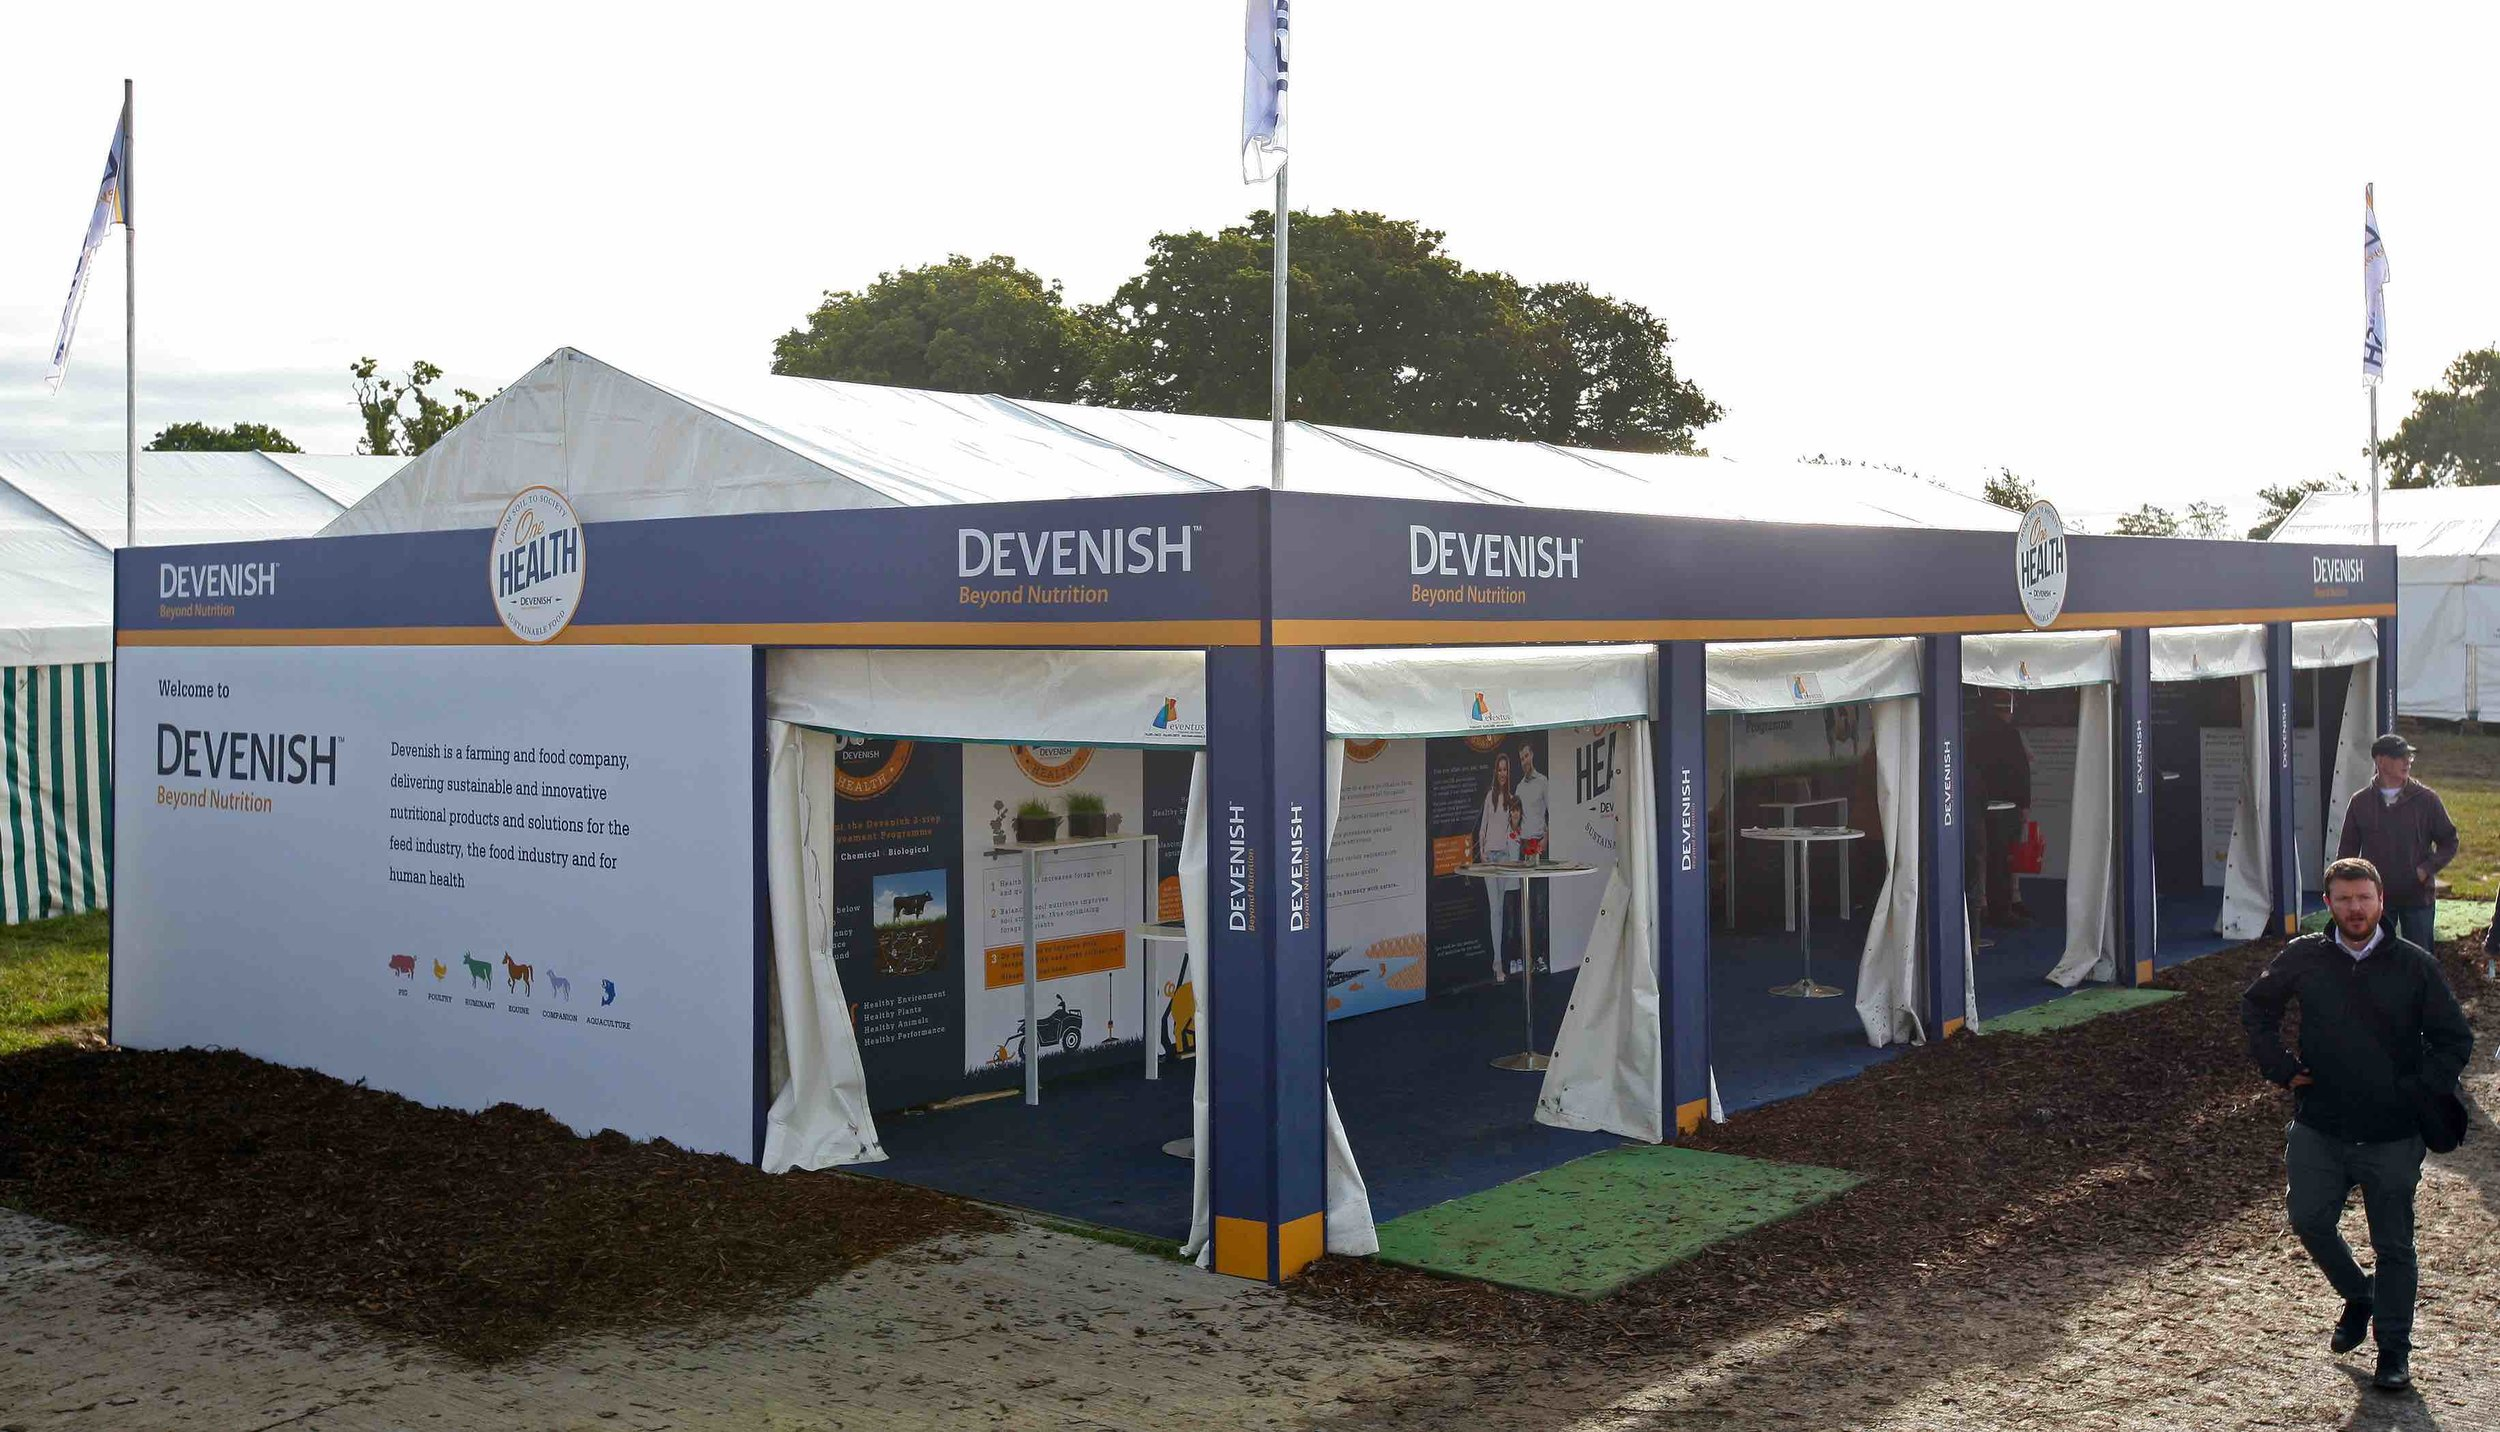 Devenish Exhibition Stand at The National Ploughing Championships 2017